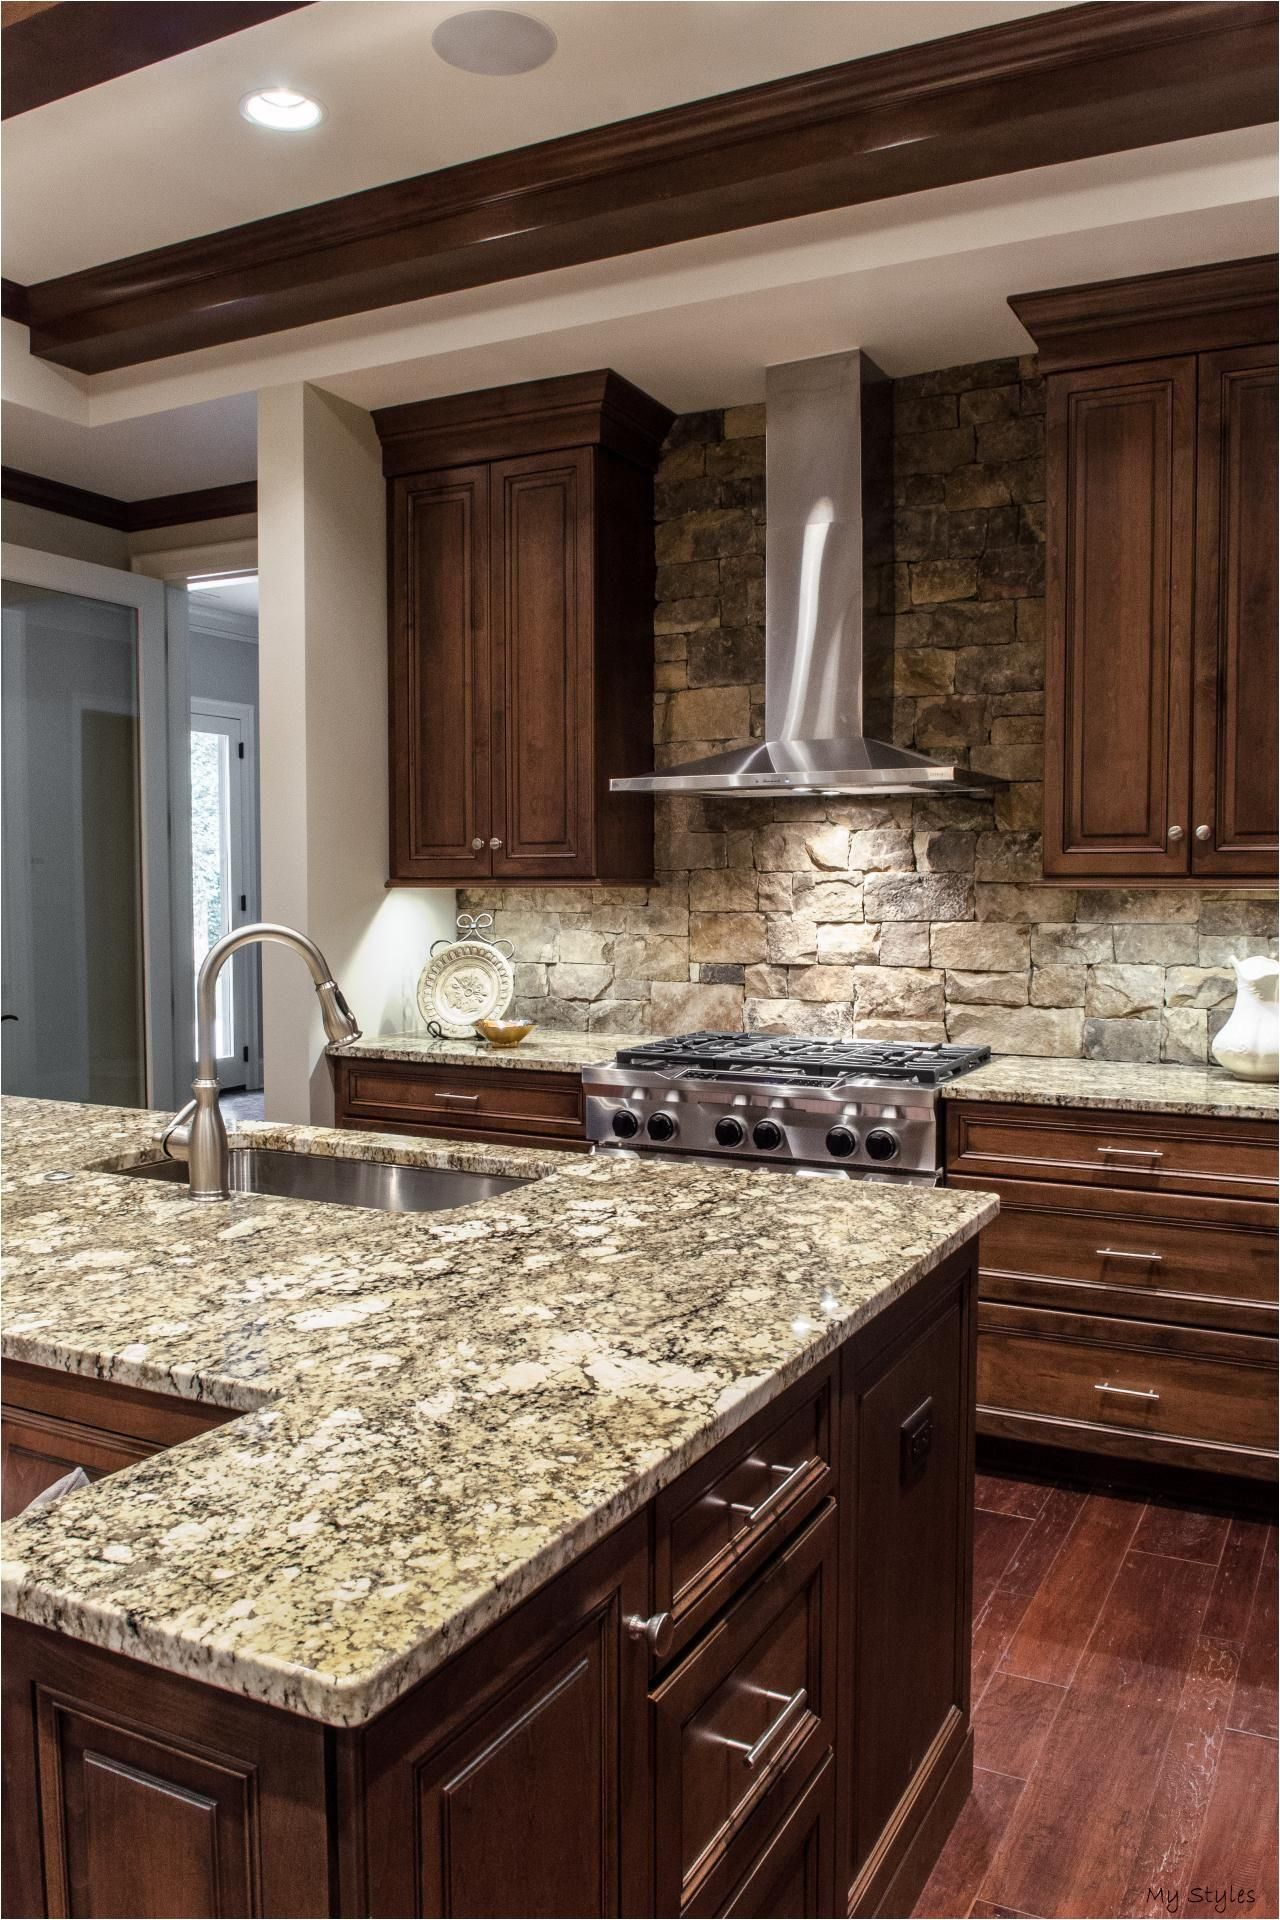 Aug 15 2015 Custom Wood Cabinets And Gray Stone Countertops Are Top Of The Li Dark Wood Kitchen Cabinets Brown Kitchen Cabinets Granite Countertops Kitchen